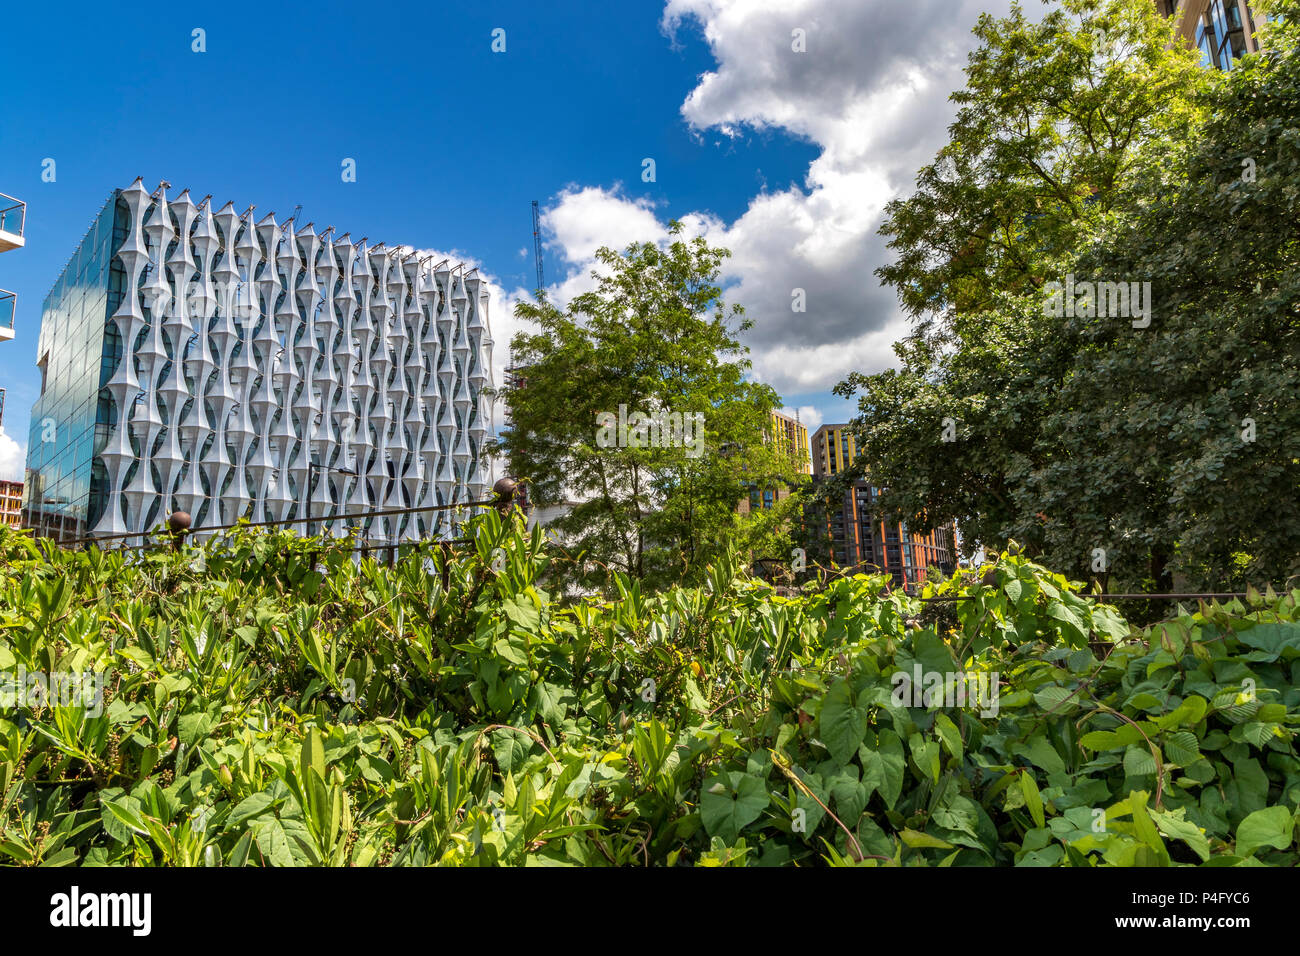 The new United States Embassy in London , which has ''sails'' on the exterior of the building which catch the sun , located in Nine Elms ,London SW11 - Stock Image